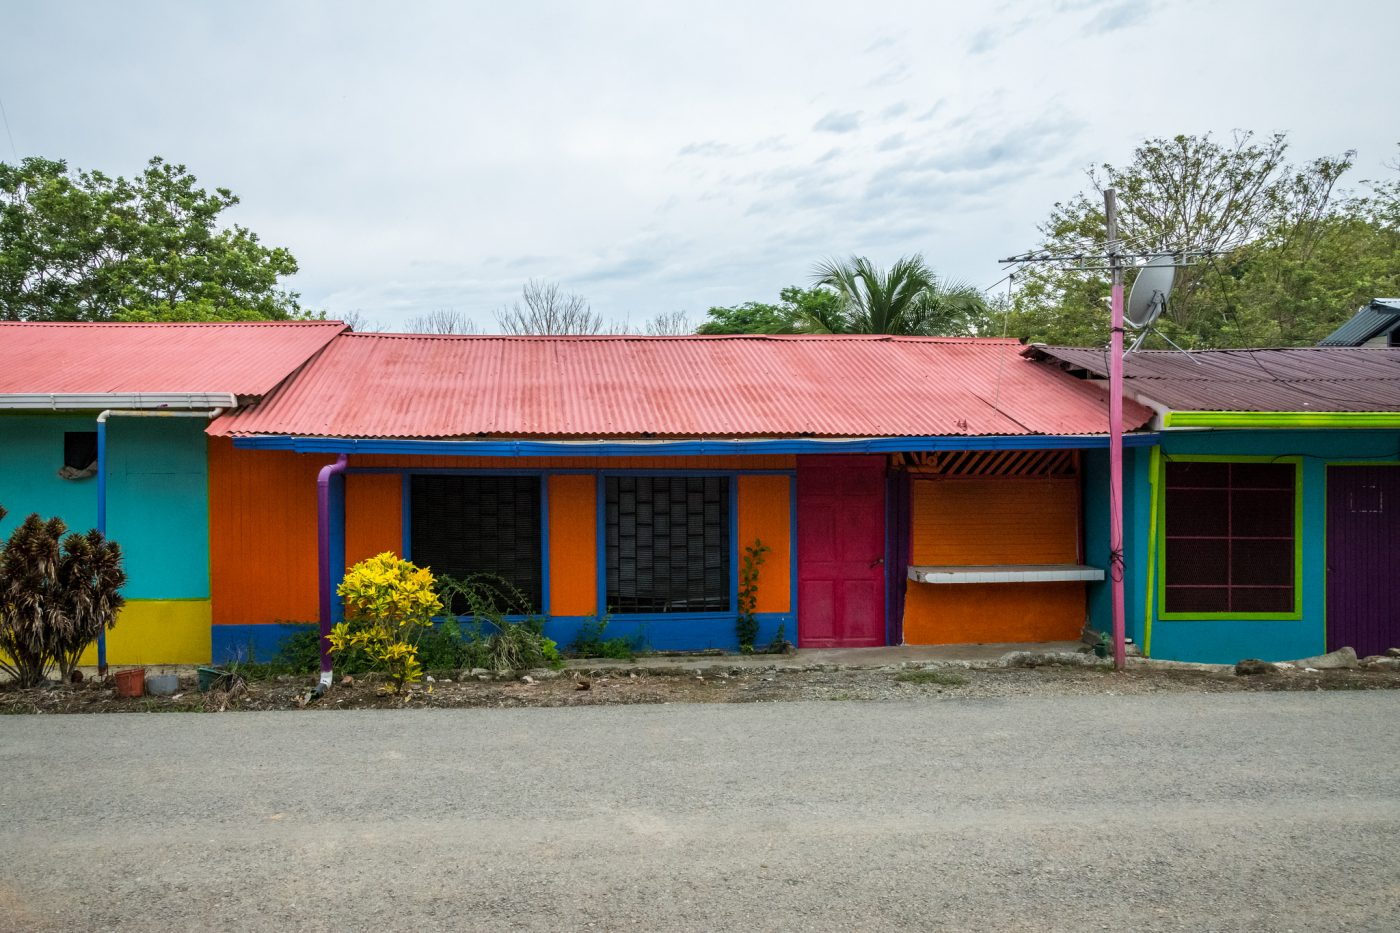 Colourful homes in Uvita. Photo by dconvertini via Flickr CC